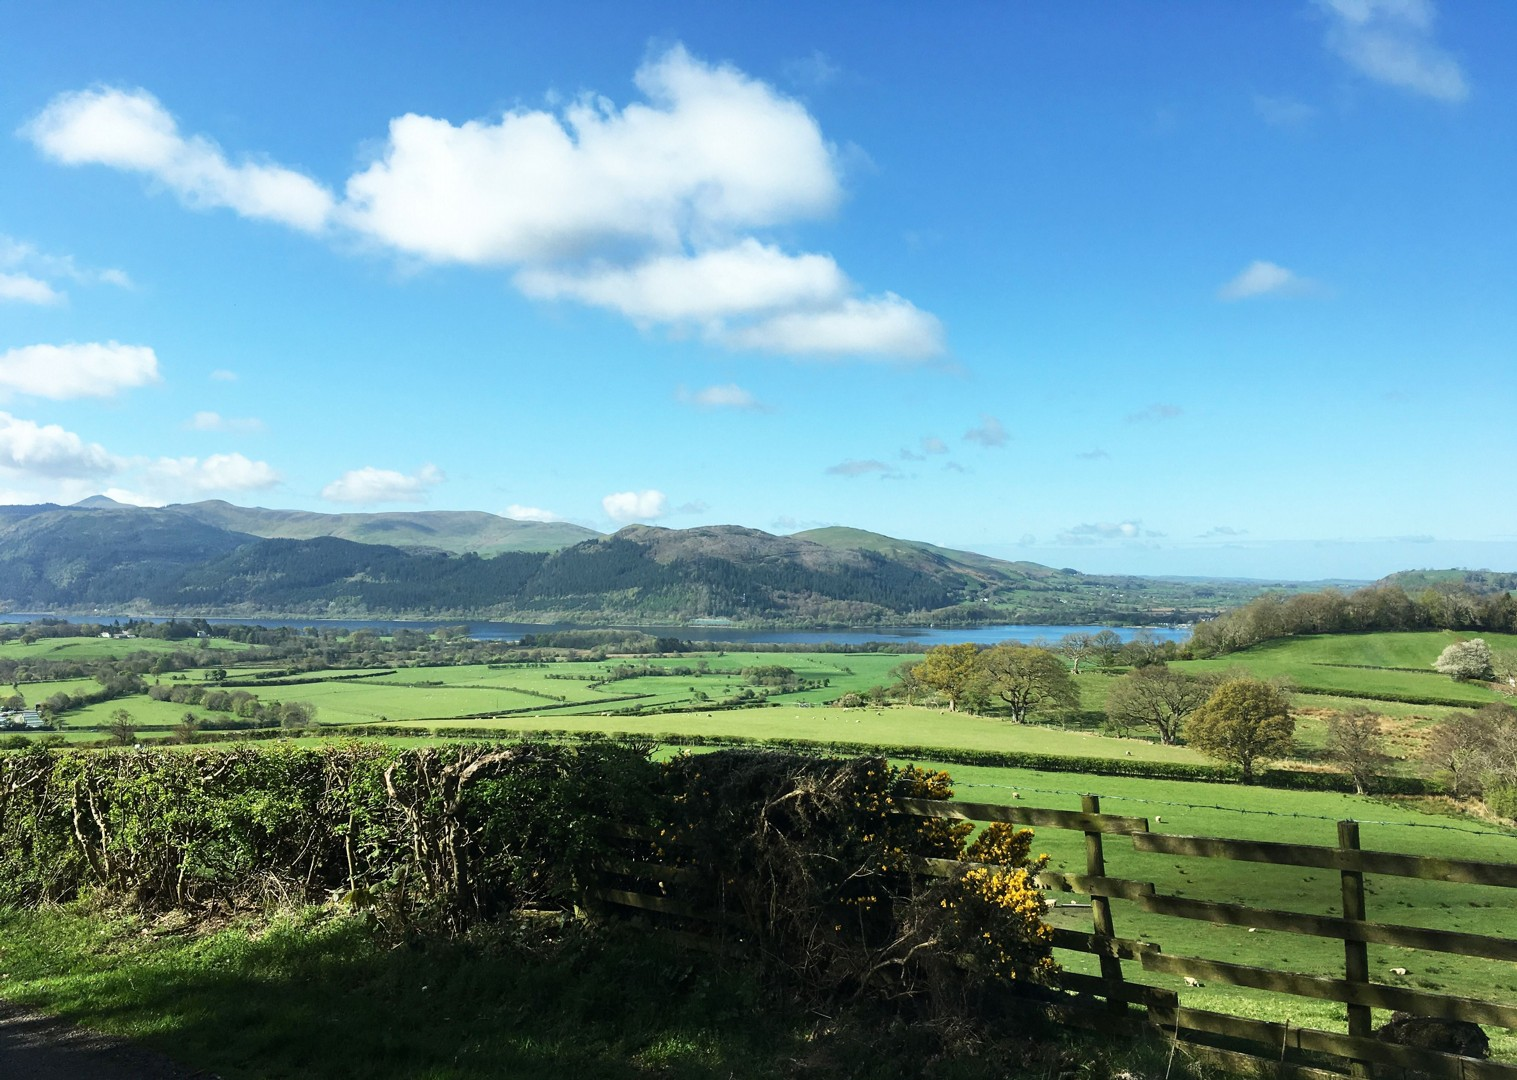 _Staff.428.33582.jpg - UK - Lake District - Derwent Water - Guided Leisure Cycling Holiday - Leisure Cycling